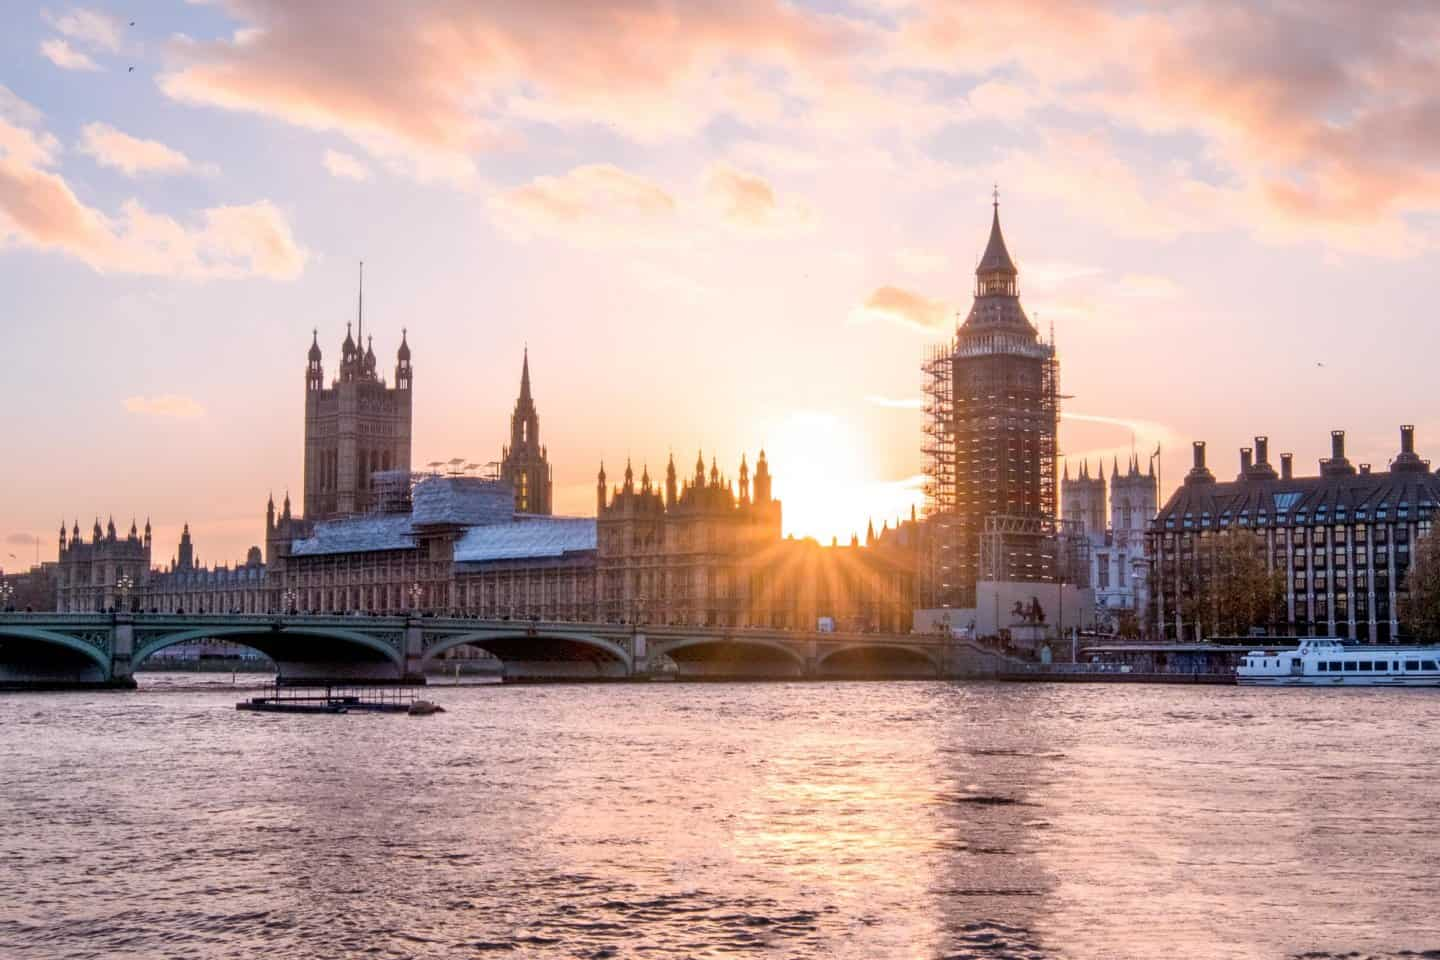 Houses of Parliament, Palace of Westminster and Elizabeth Tower (Big Ben) at sunset viewed from South Bank.